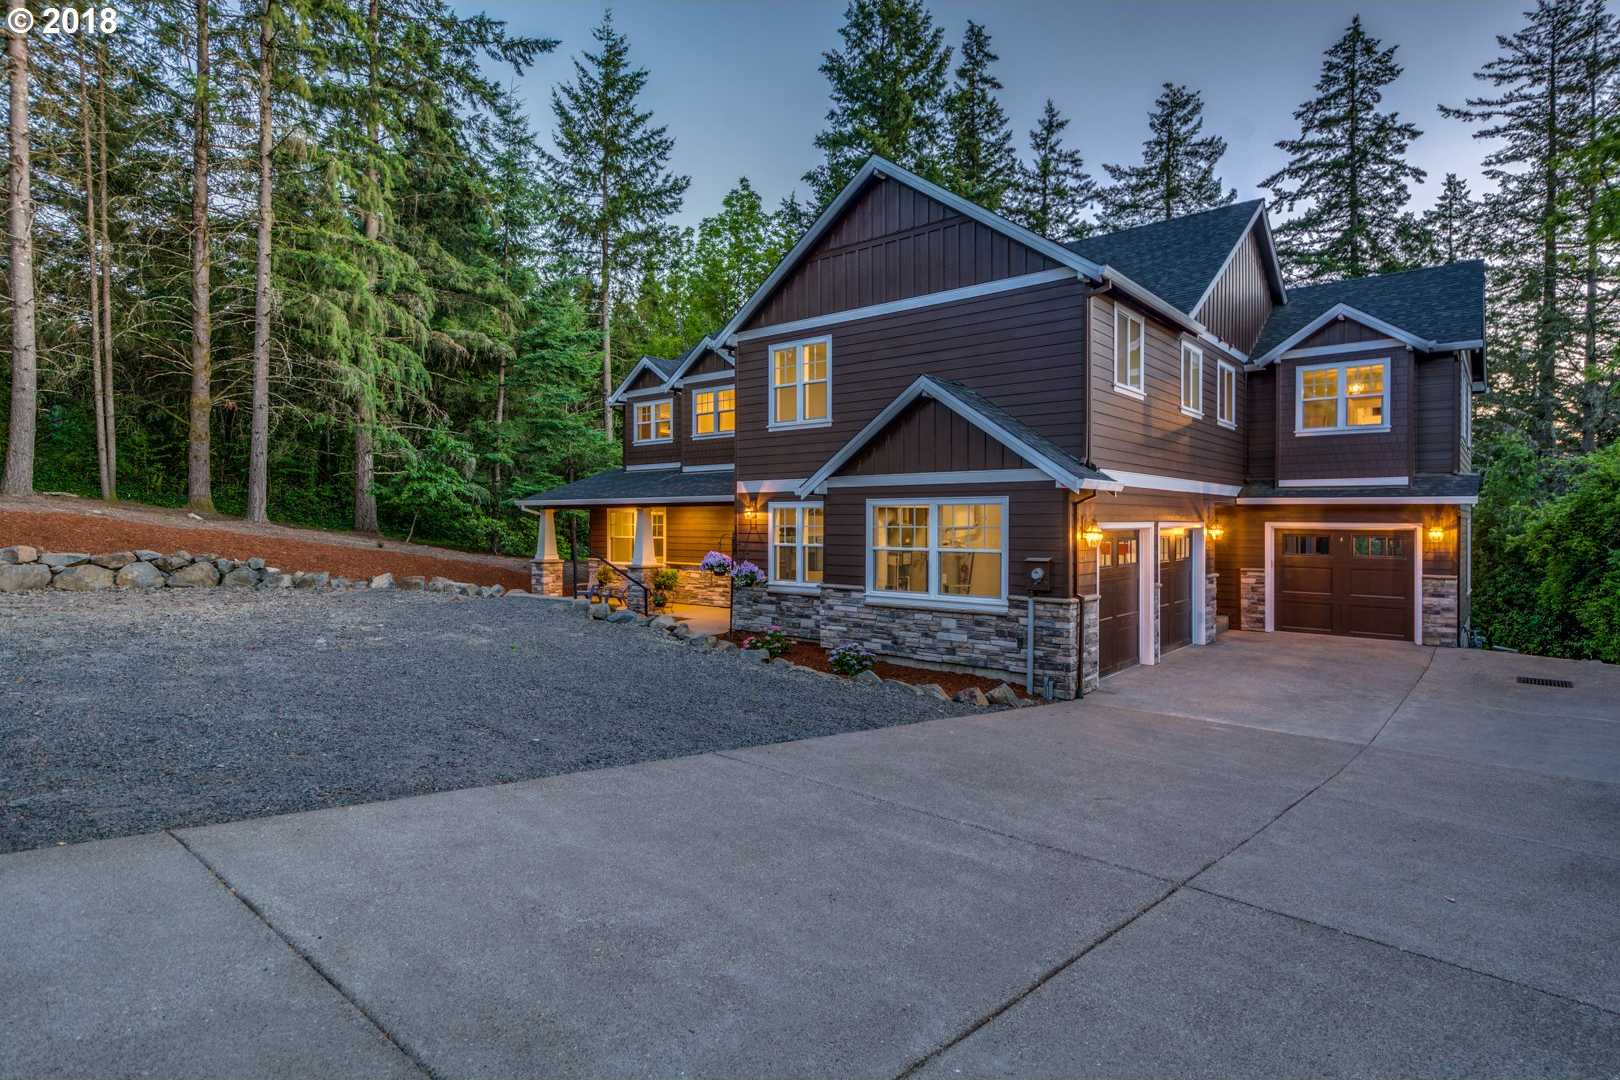 $1,100,000 - 4Br/4Ba -  for Sale in Tigard